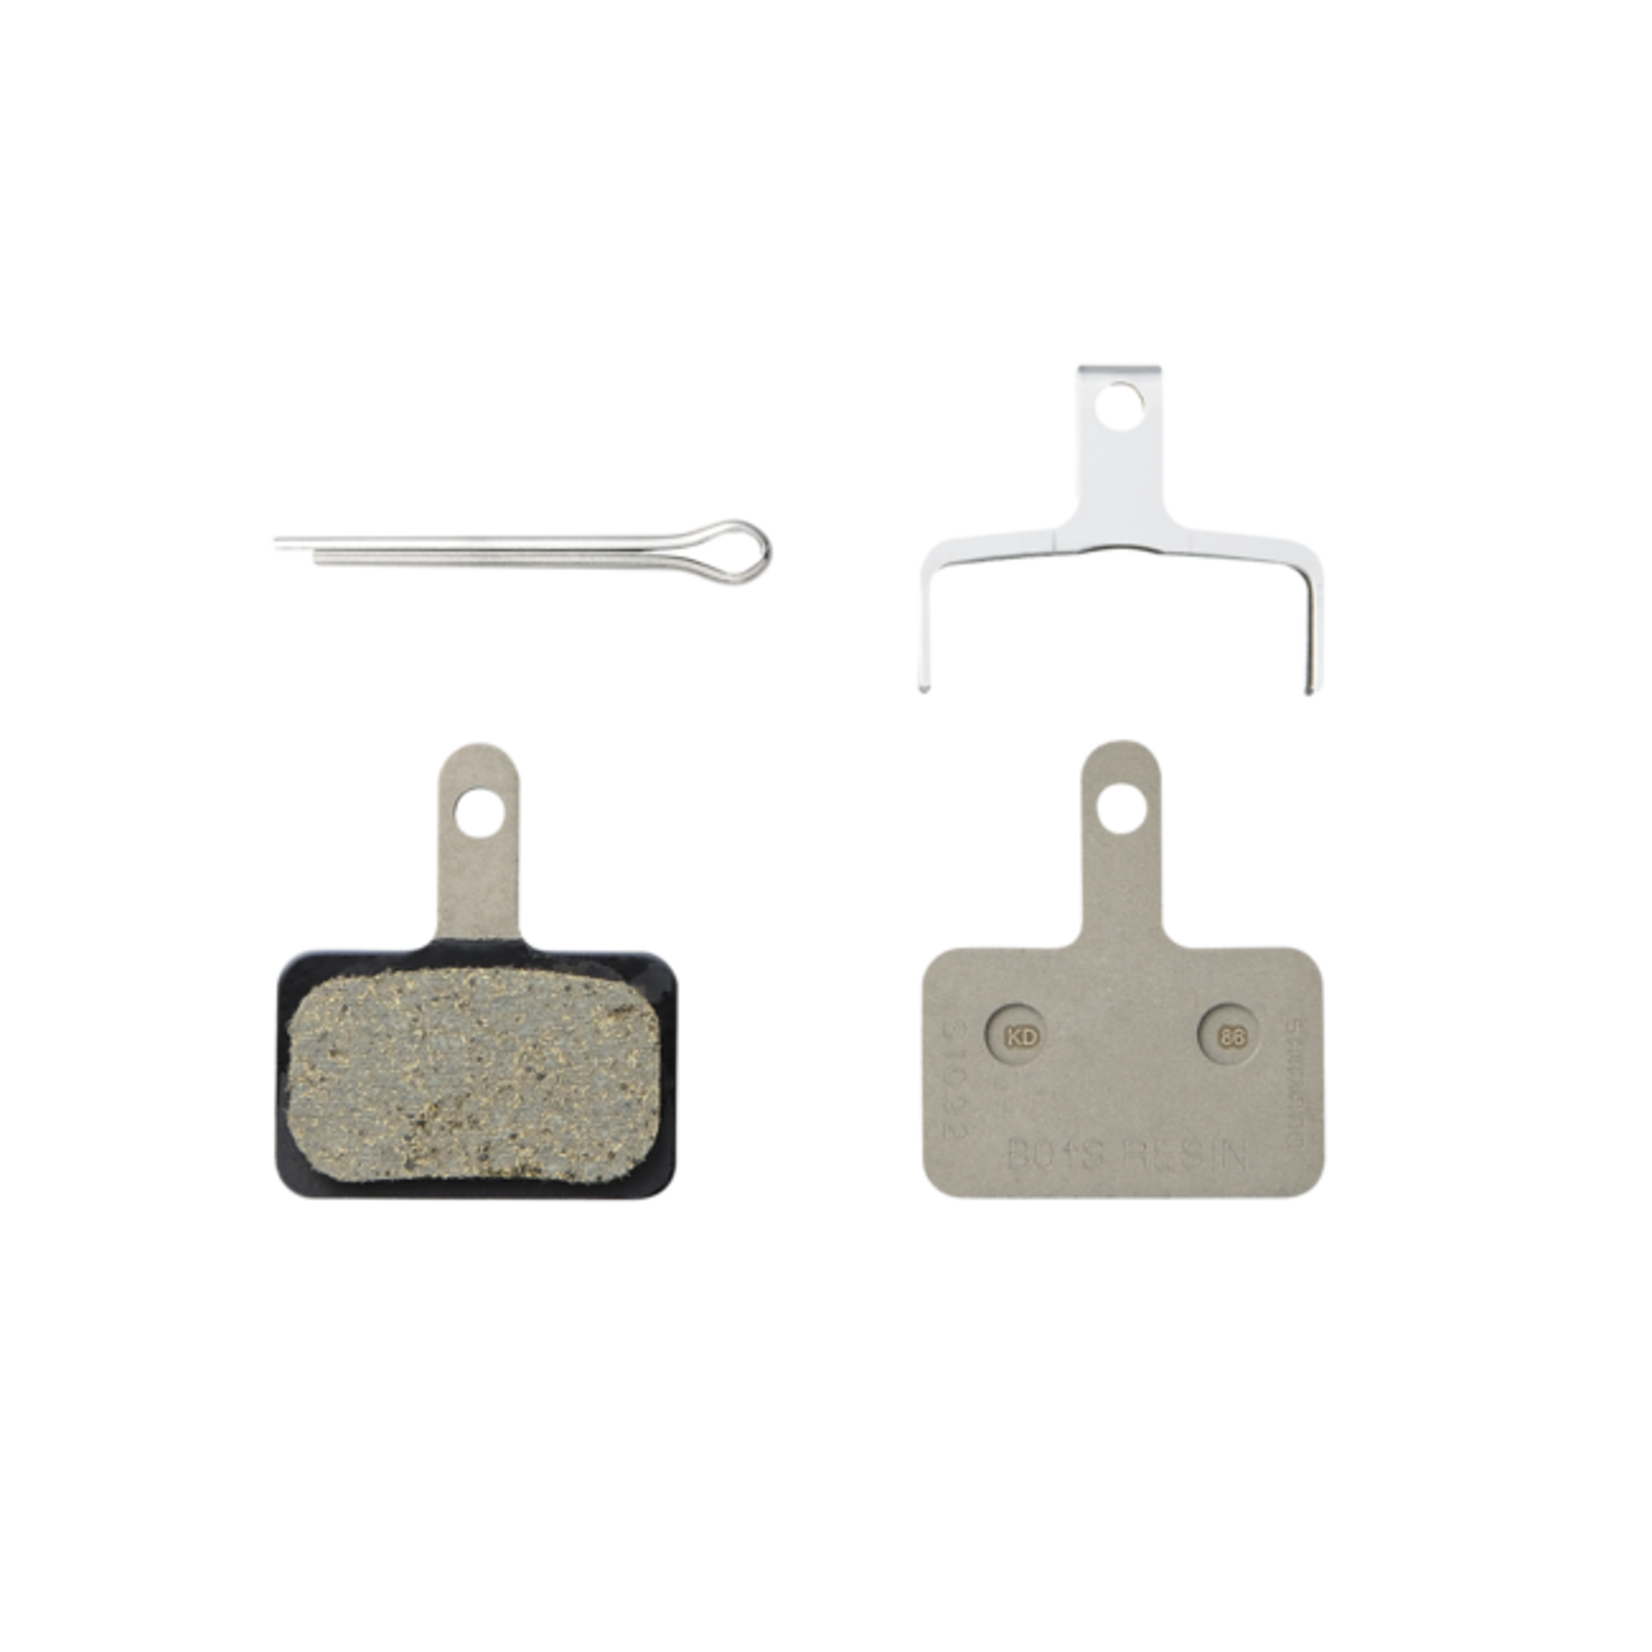 Shimano Shimano B01S Resin Disc Brake Pad and Spring, 4th version of B01S pad, fits many Deore, Alivio and Acera Calipers